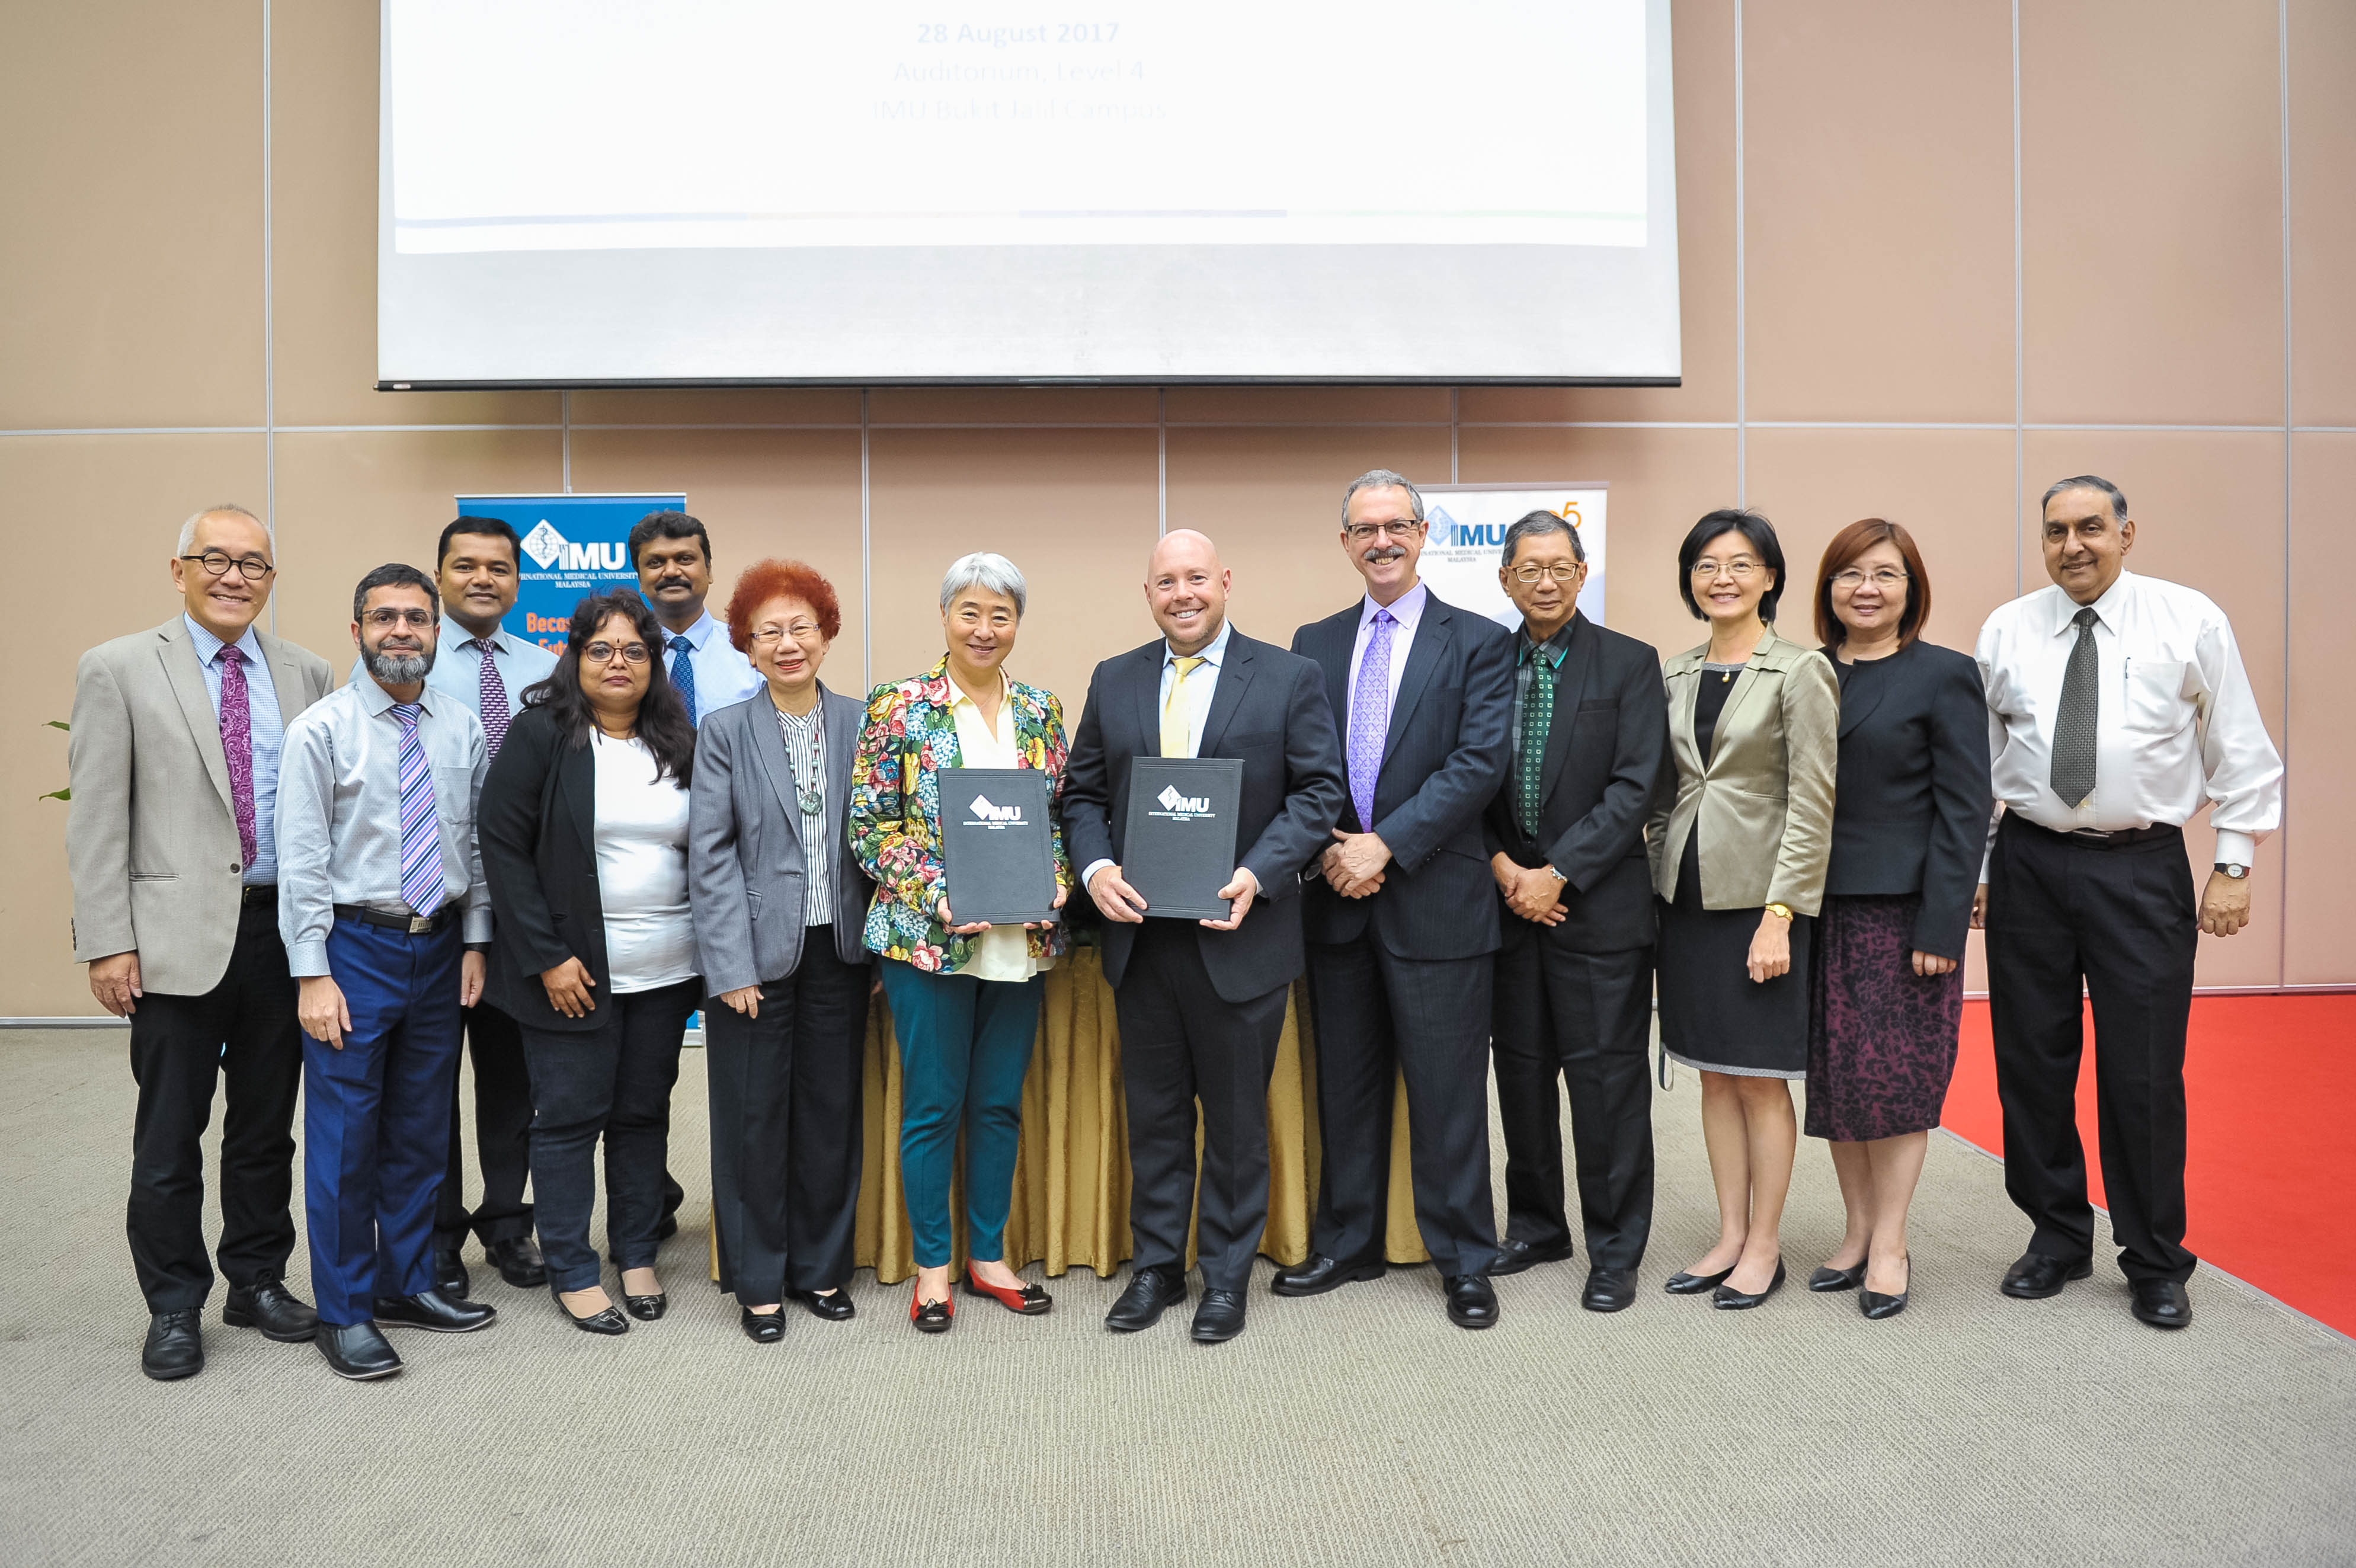 IMU News | IMU and Becker to Collaborate to Further Boost